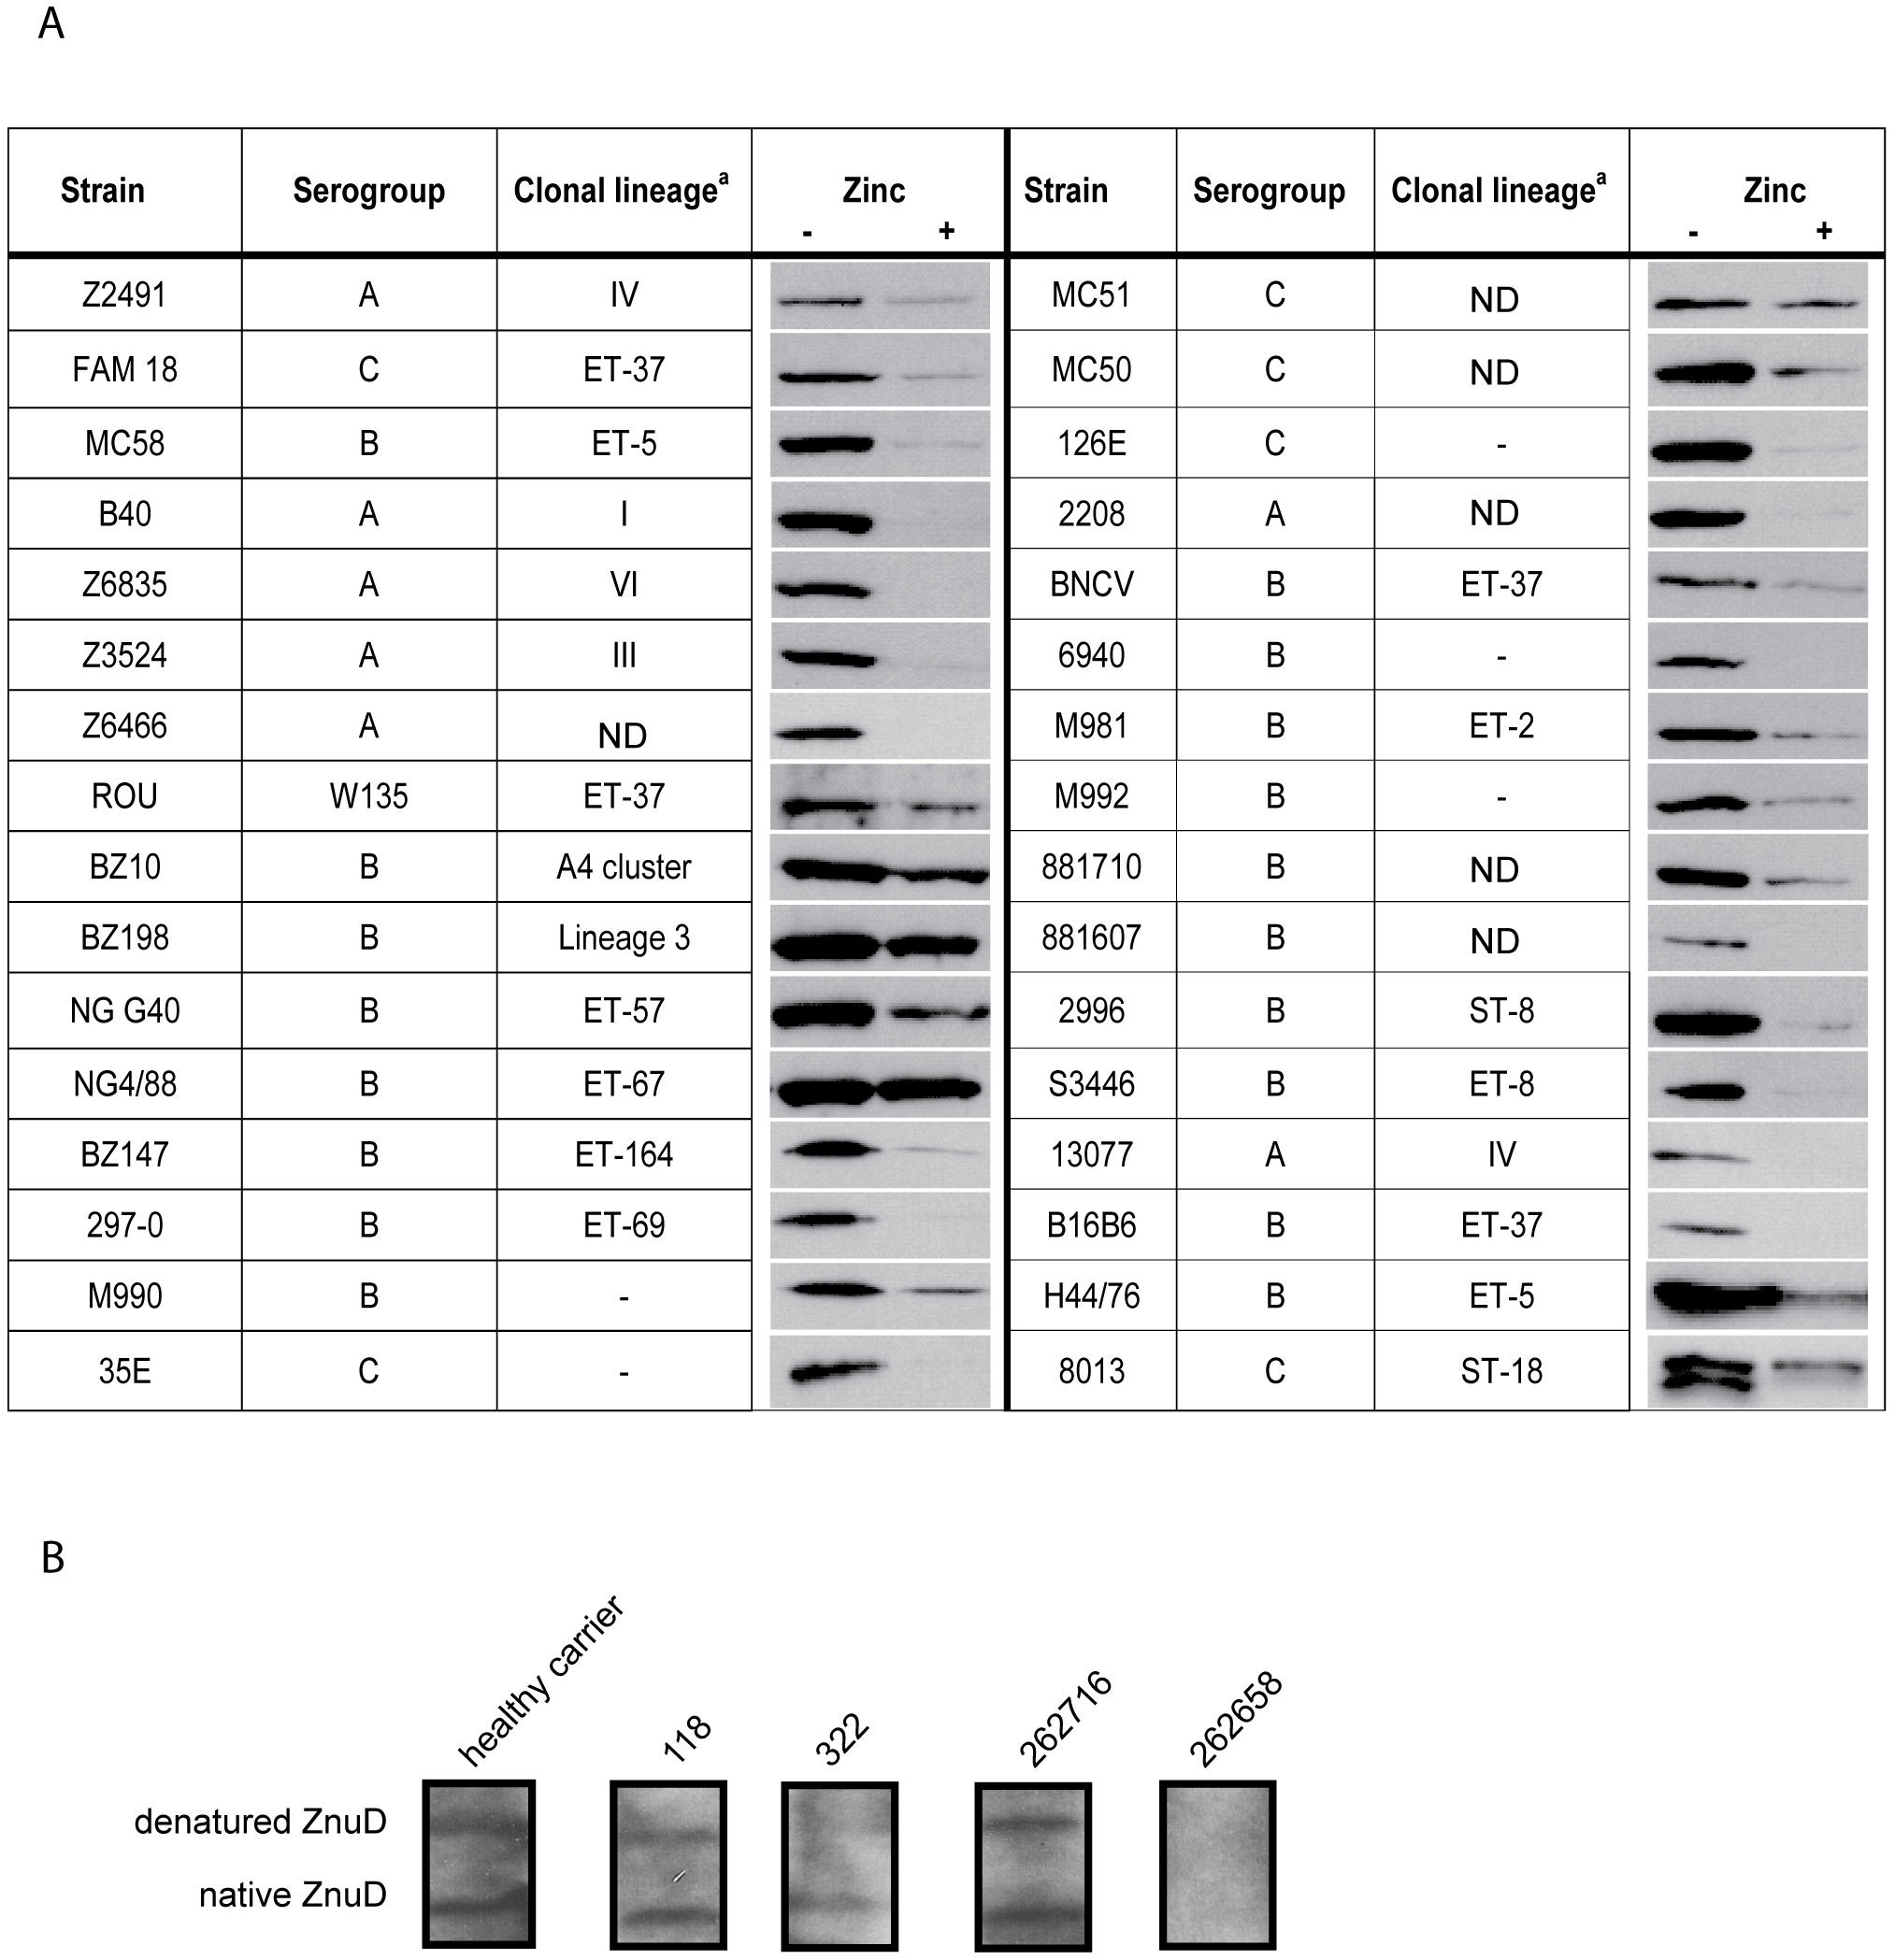 ZnuD synthesis in meningococcal isolates and in vivo.